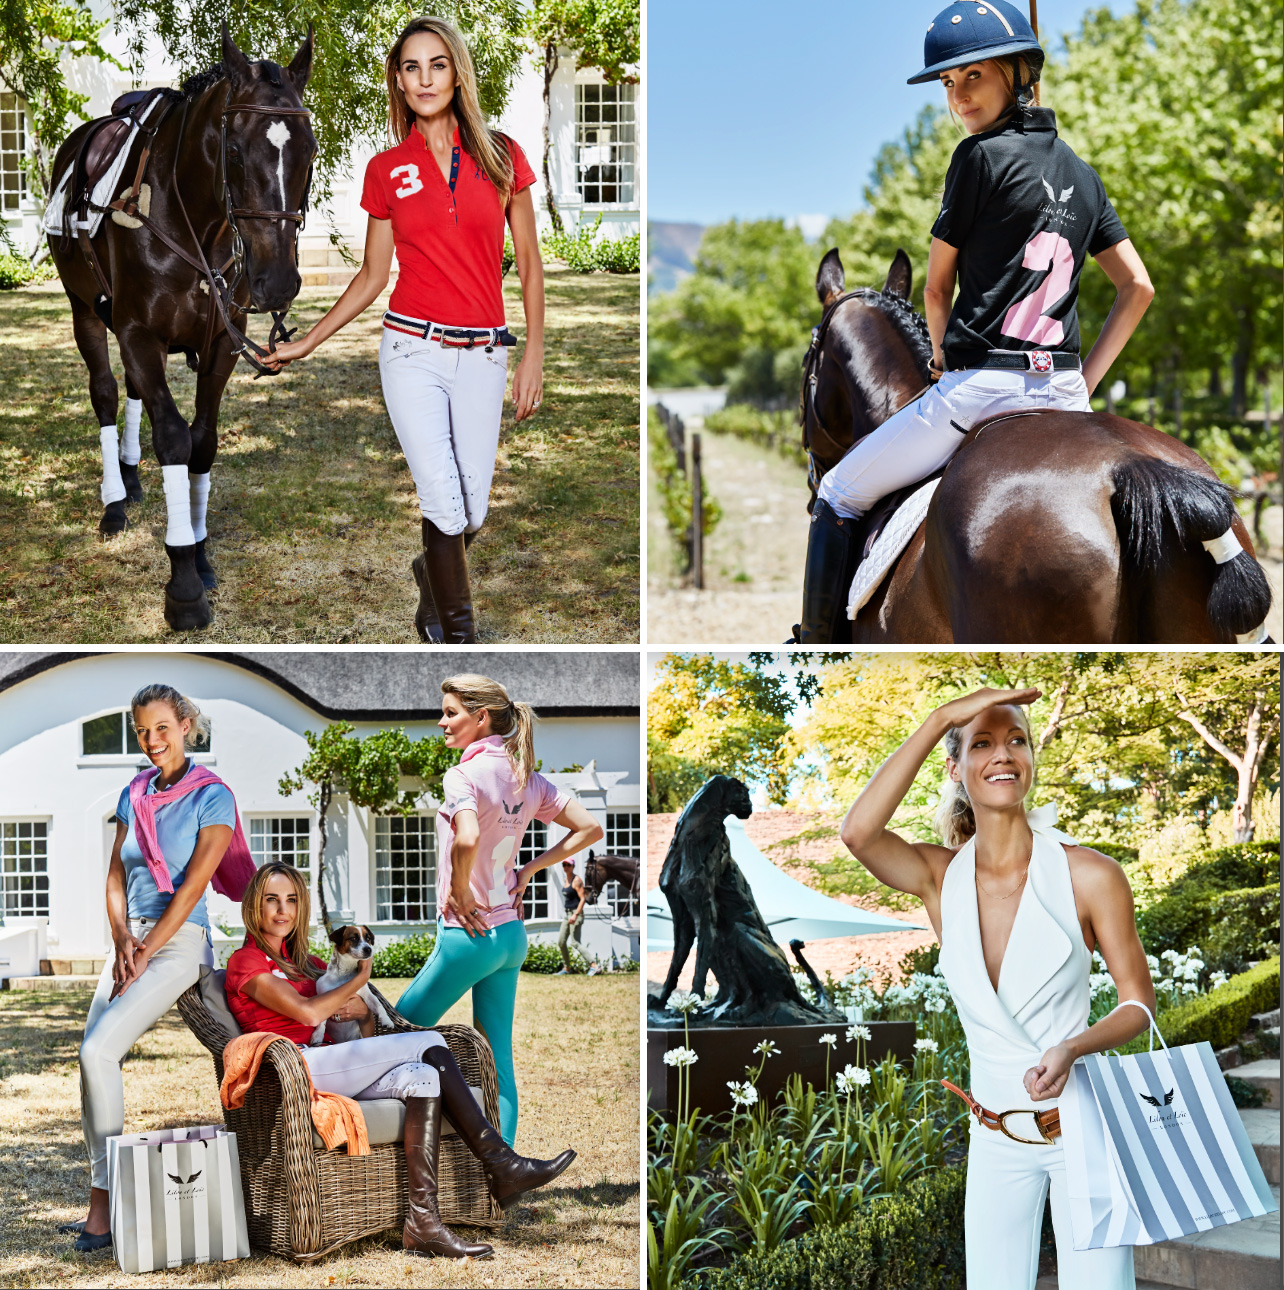 Lifestyle photographer - images of women wearing Polo clothes.  Shot on location